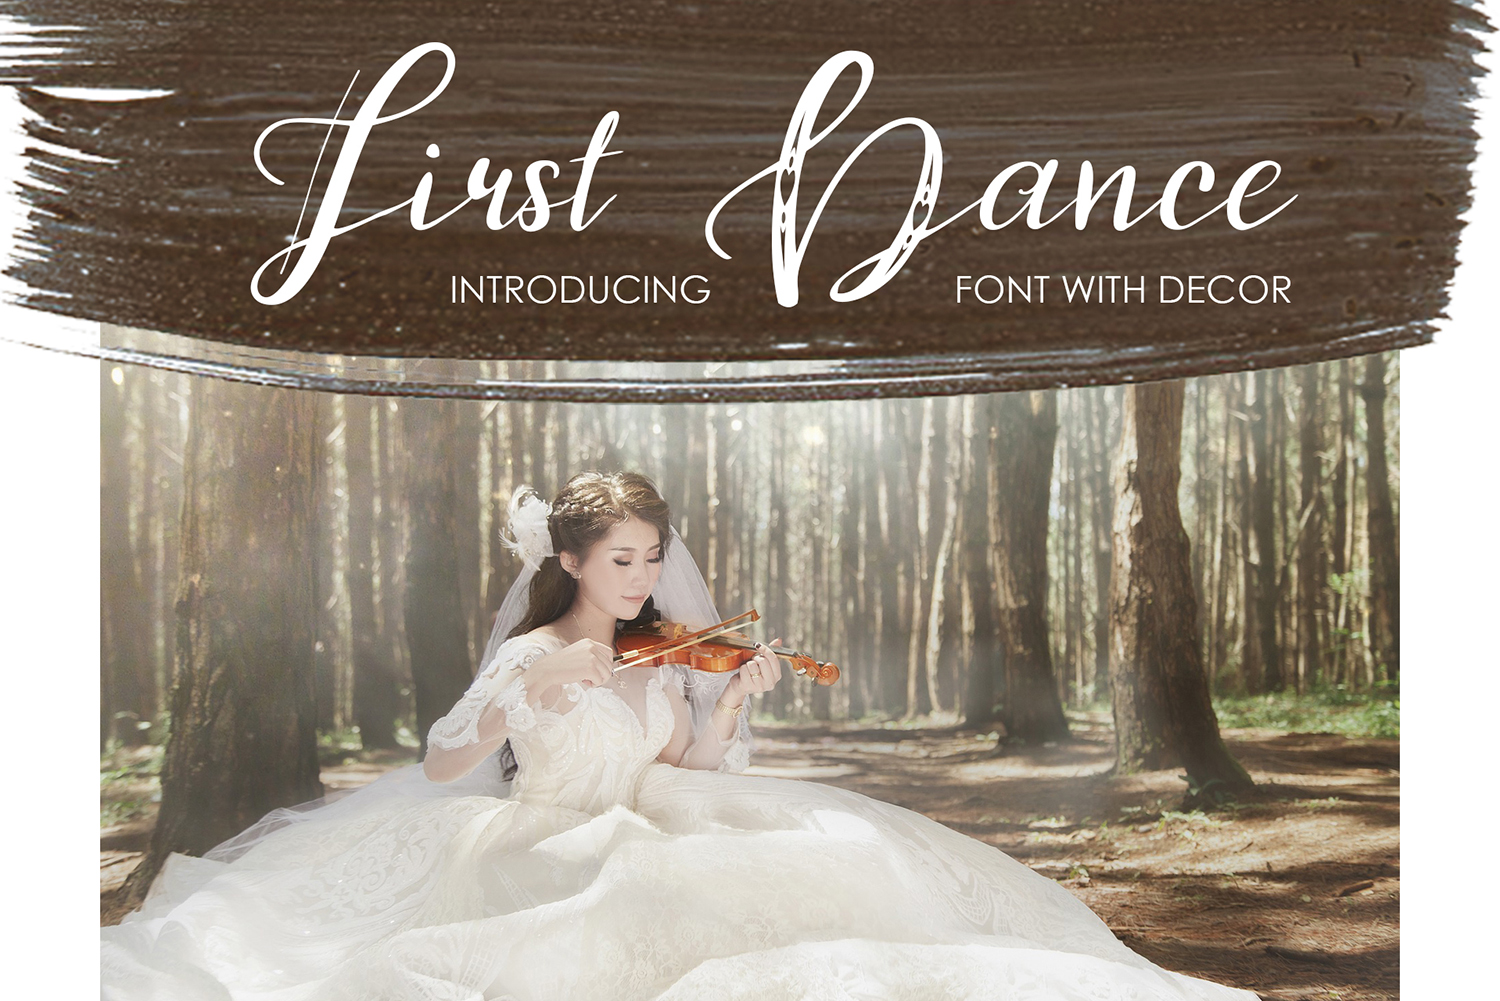 First Dance Script & Handwritten Font By tregubova.jul